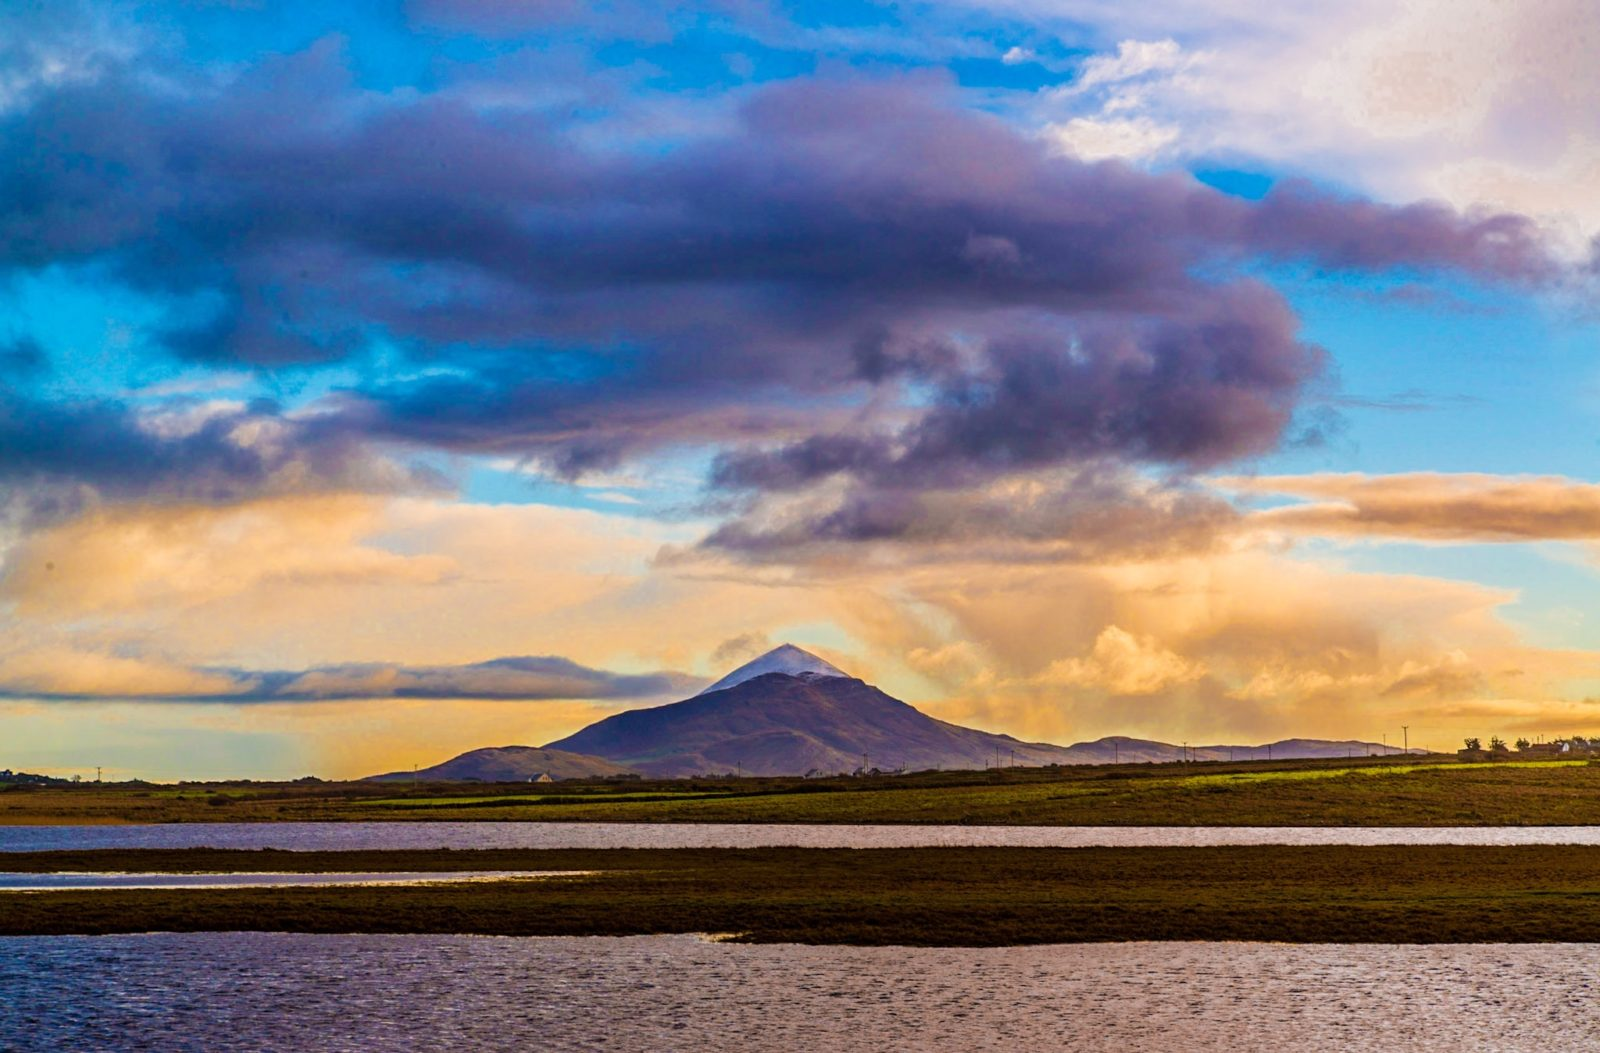 The mighty croaghpatrick